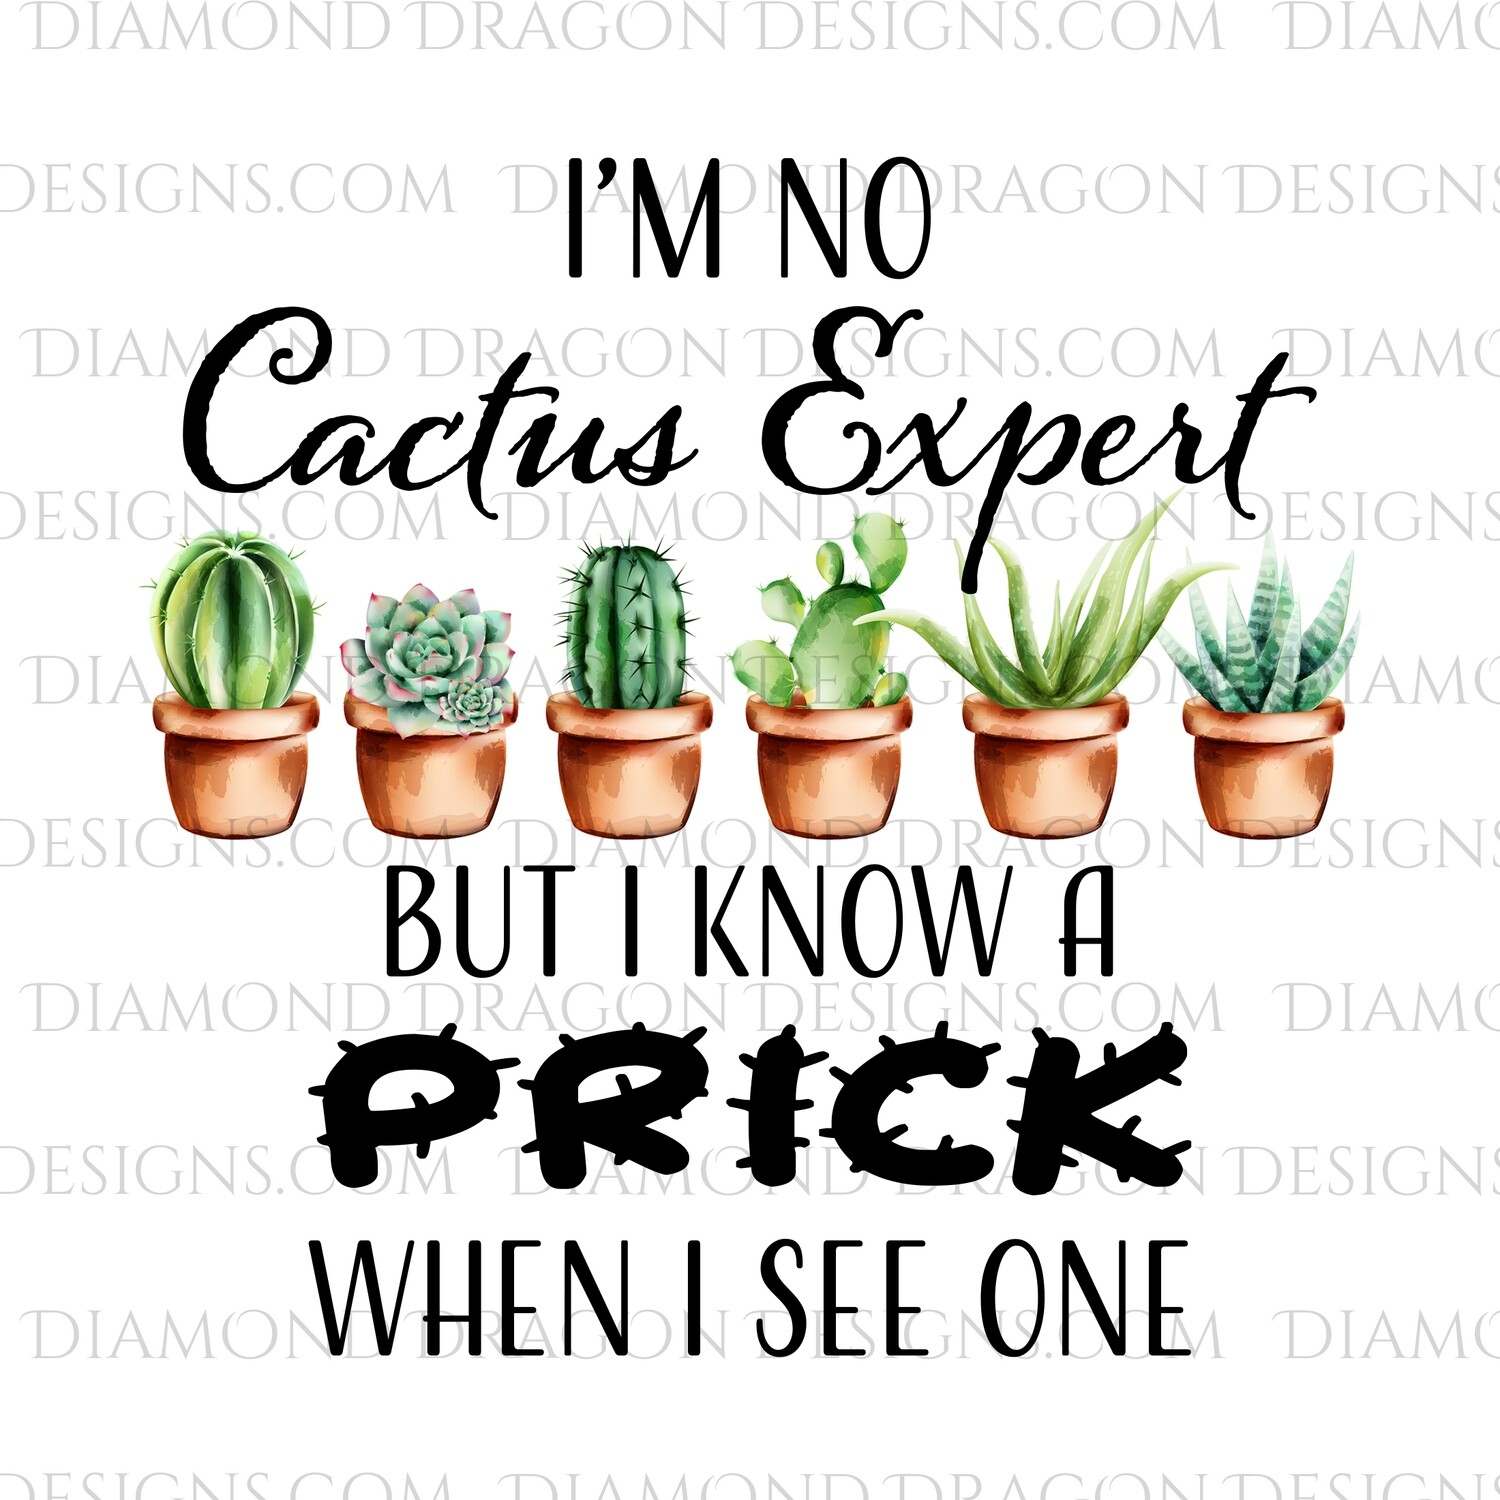 Cactus - I'm No Cactus Expert, But I Know a Prick, Waterslide